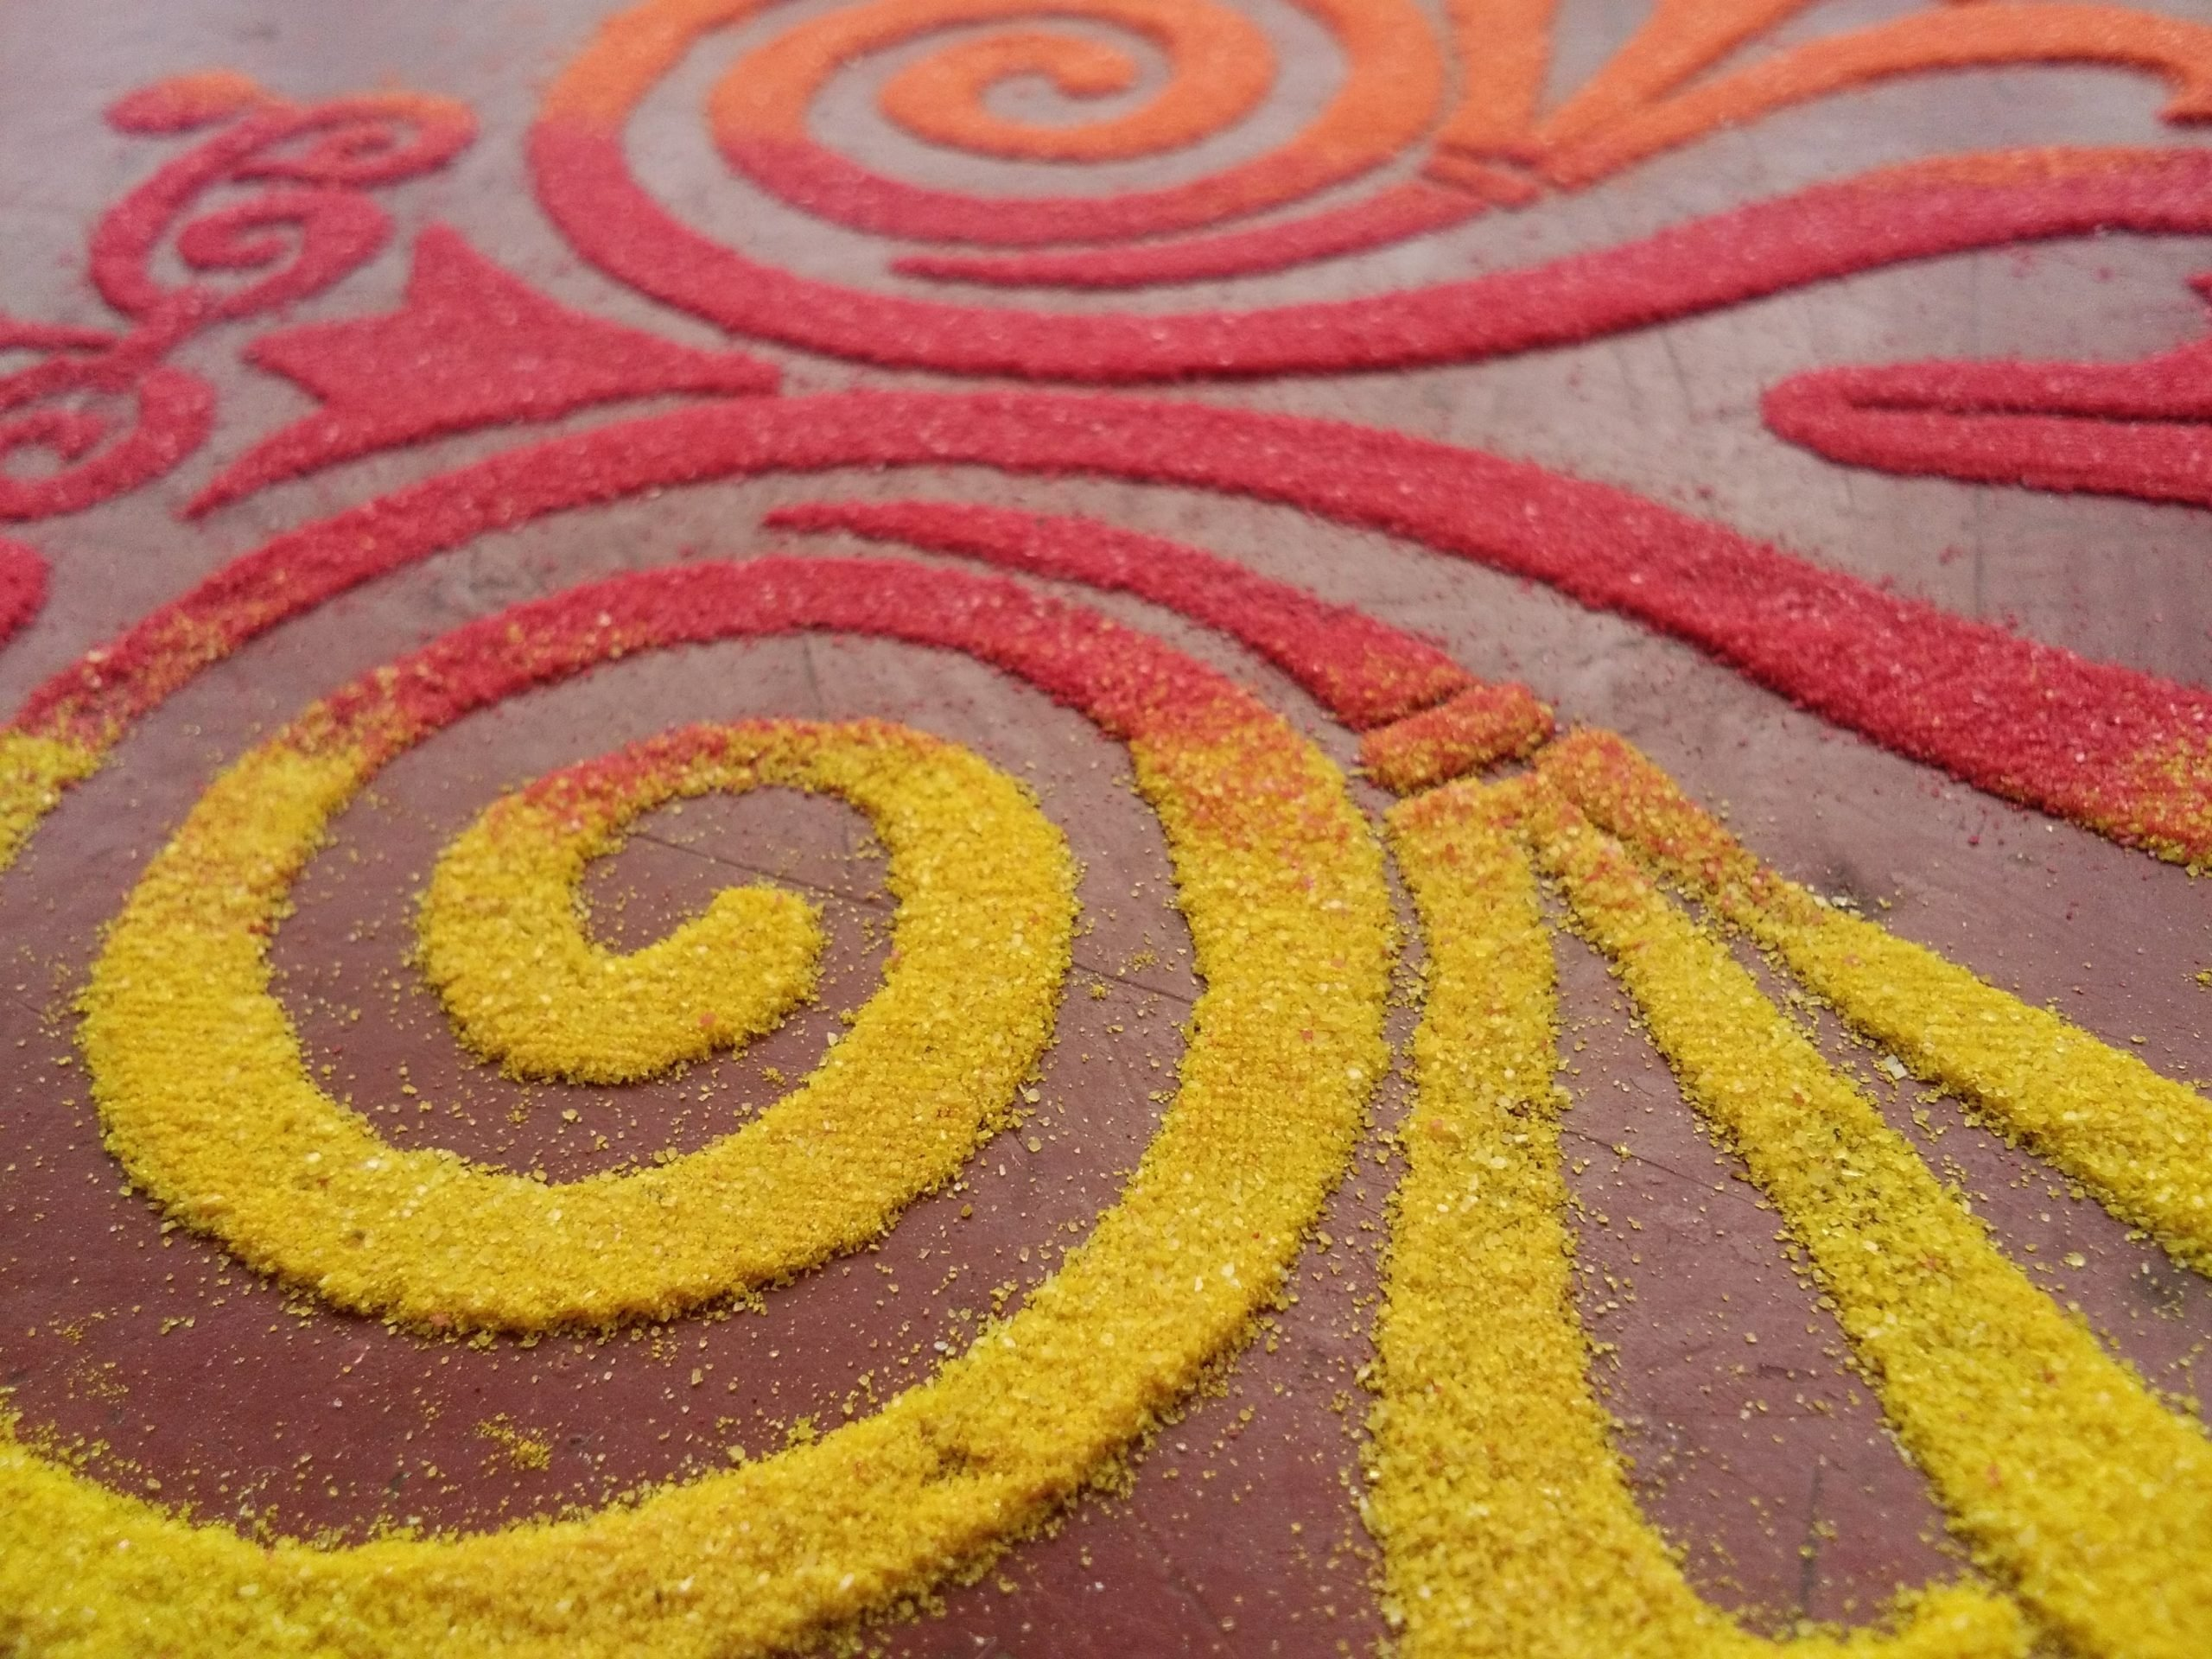 Patterns made with rice and colors